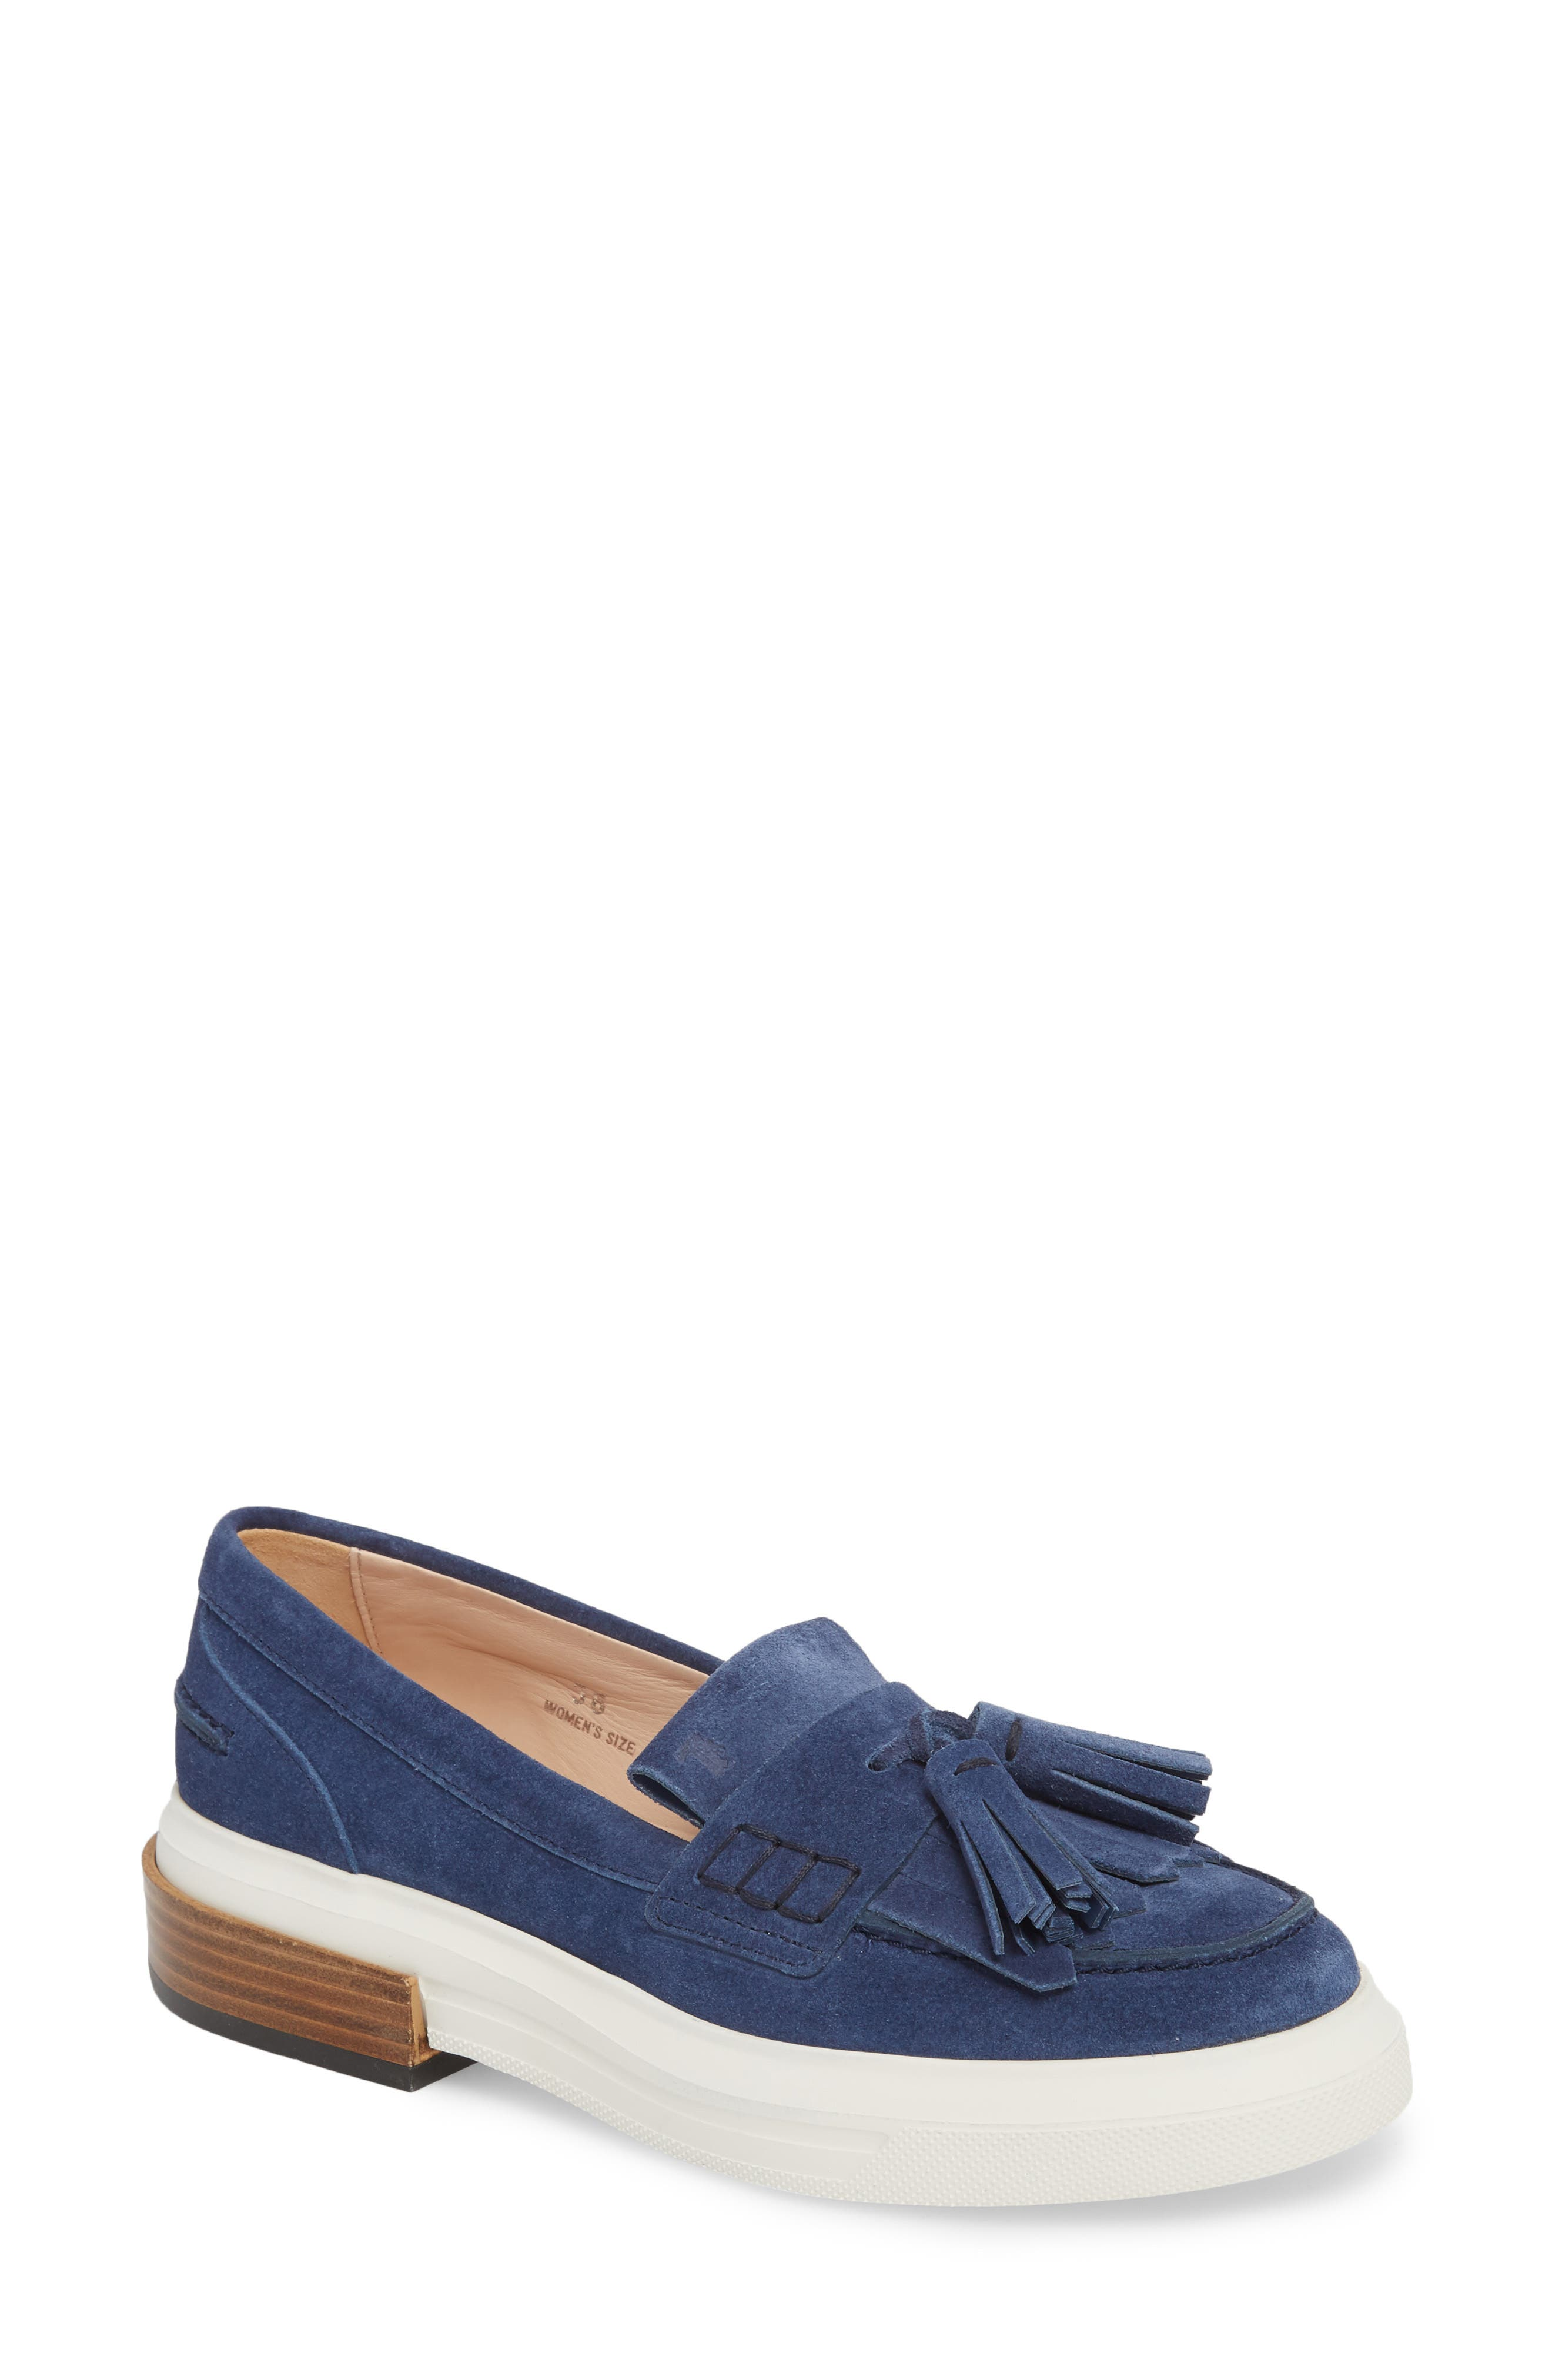 Hybrid Loafer,                         Main,                         color, 462